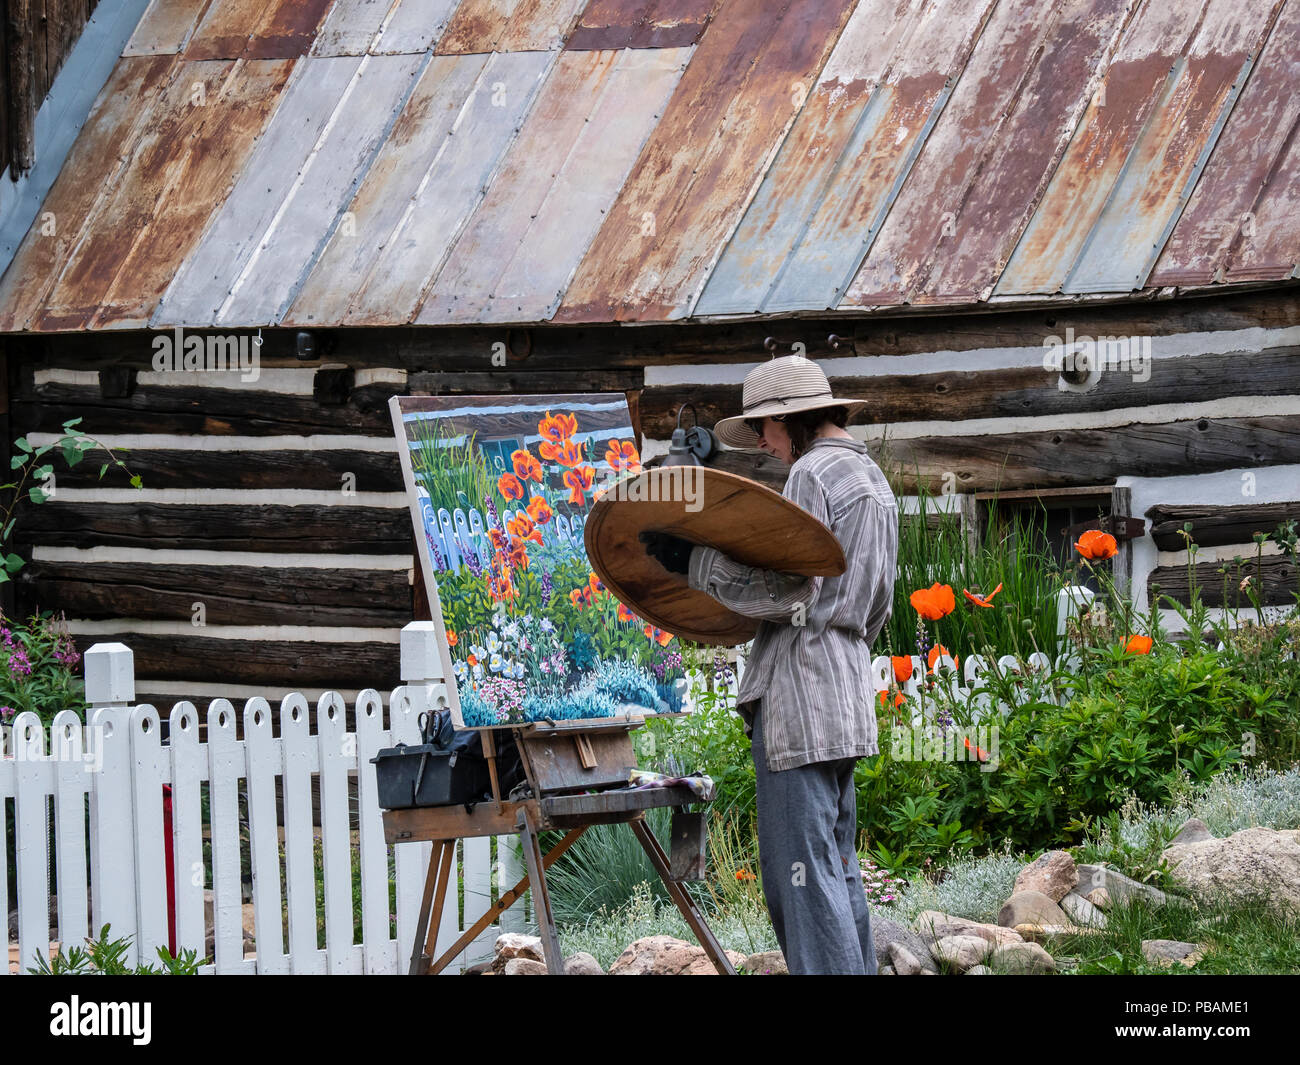 Painter on a back street, Crested Butte, Colorado. - Stock Image